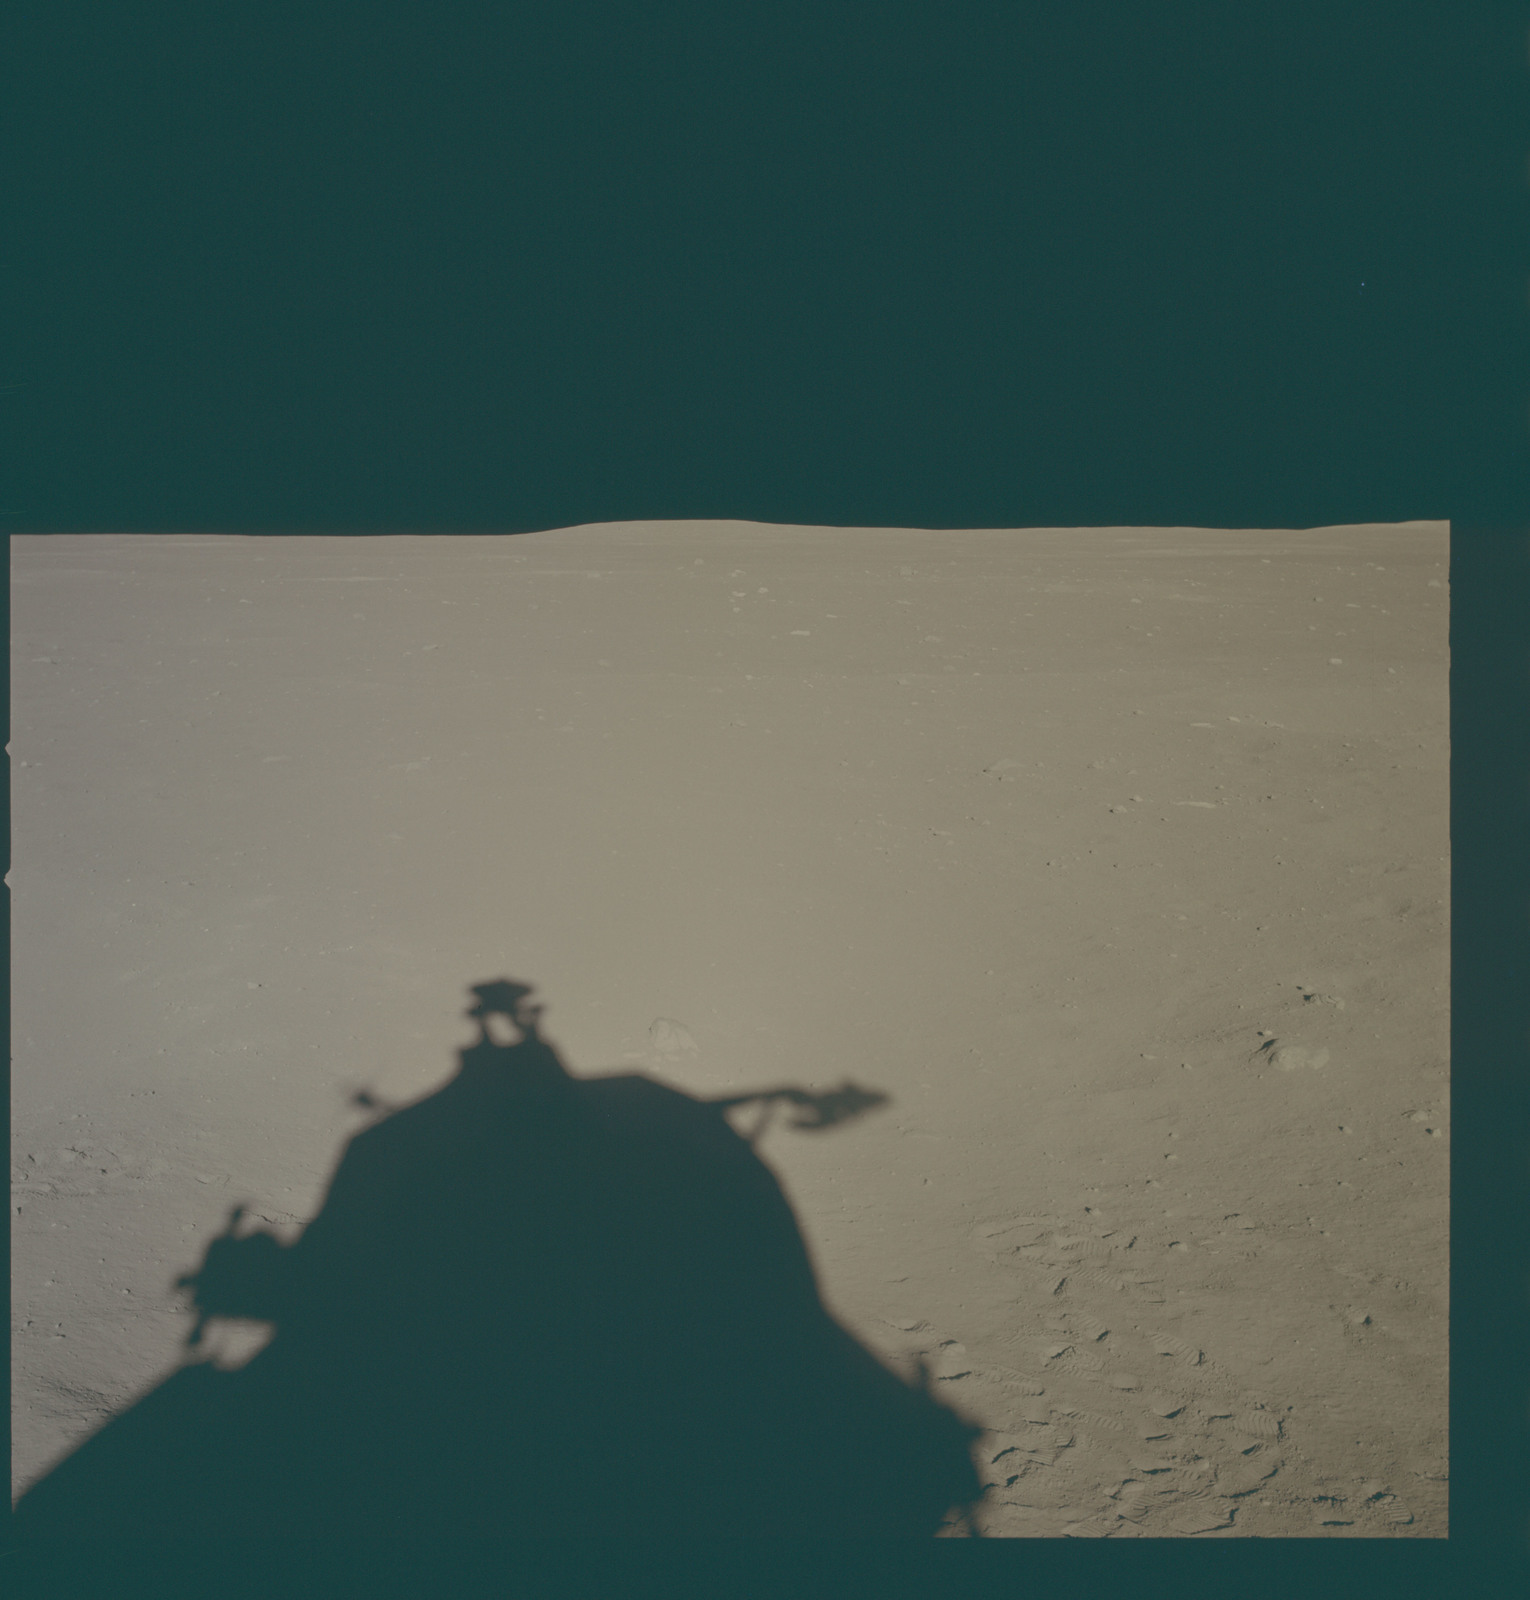 AS11-37-5489 - Apollo 11 - Apollo 11 Mission image - Lunar horizon from Tranquility Base